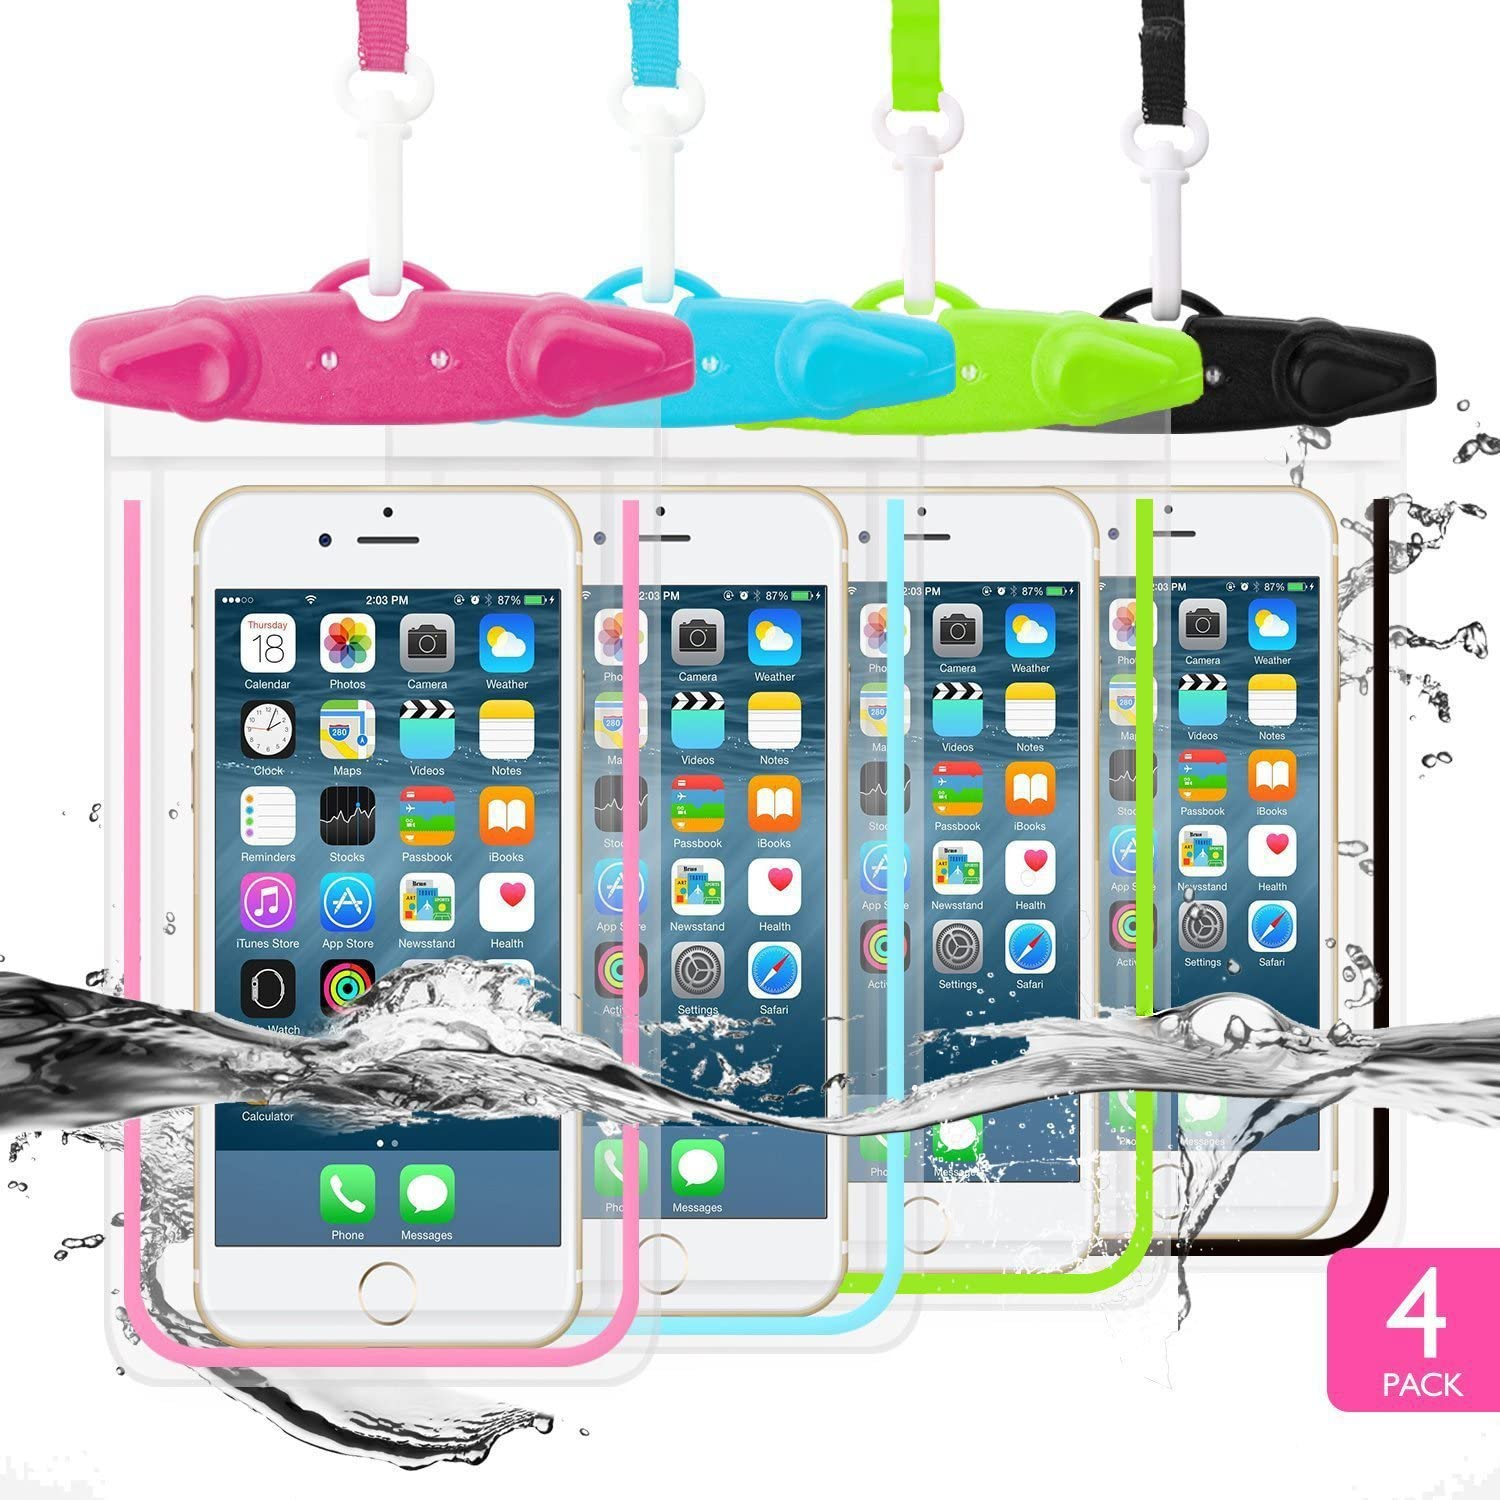 """Universal Waterproof Case, WJZXTEK Waterproof Phone Pouch for iPhone 11 Pro Max XS XR X 8 7 6S Plus Samsung Galaxy s10/s9 Google Pixel 2 HTC Up to 6.5"""",IPX8 Cellphone Dry Bag -4 Pack"""